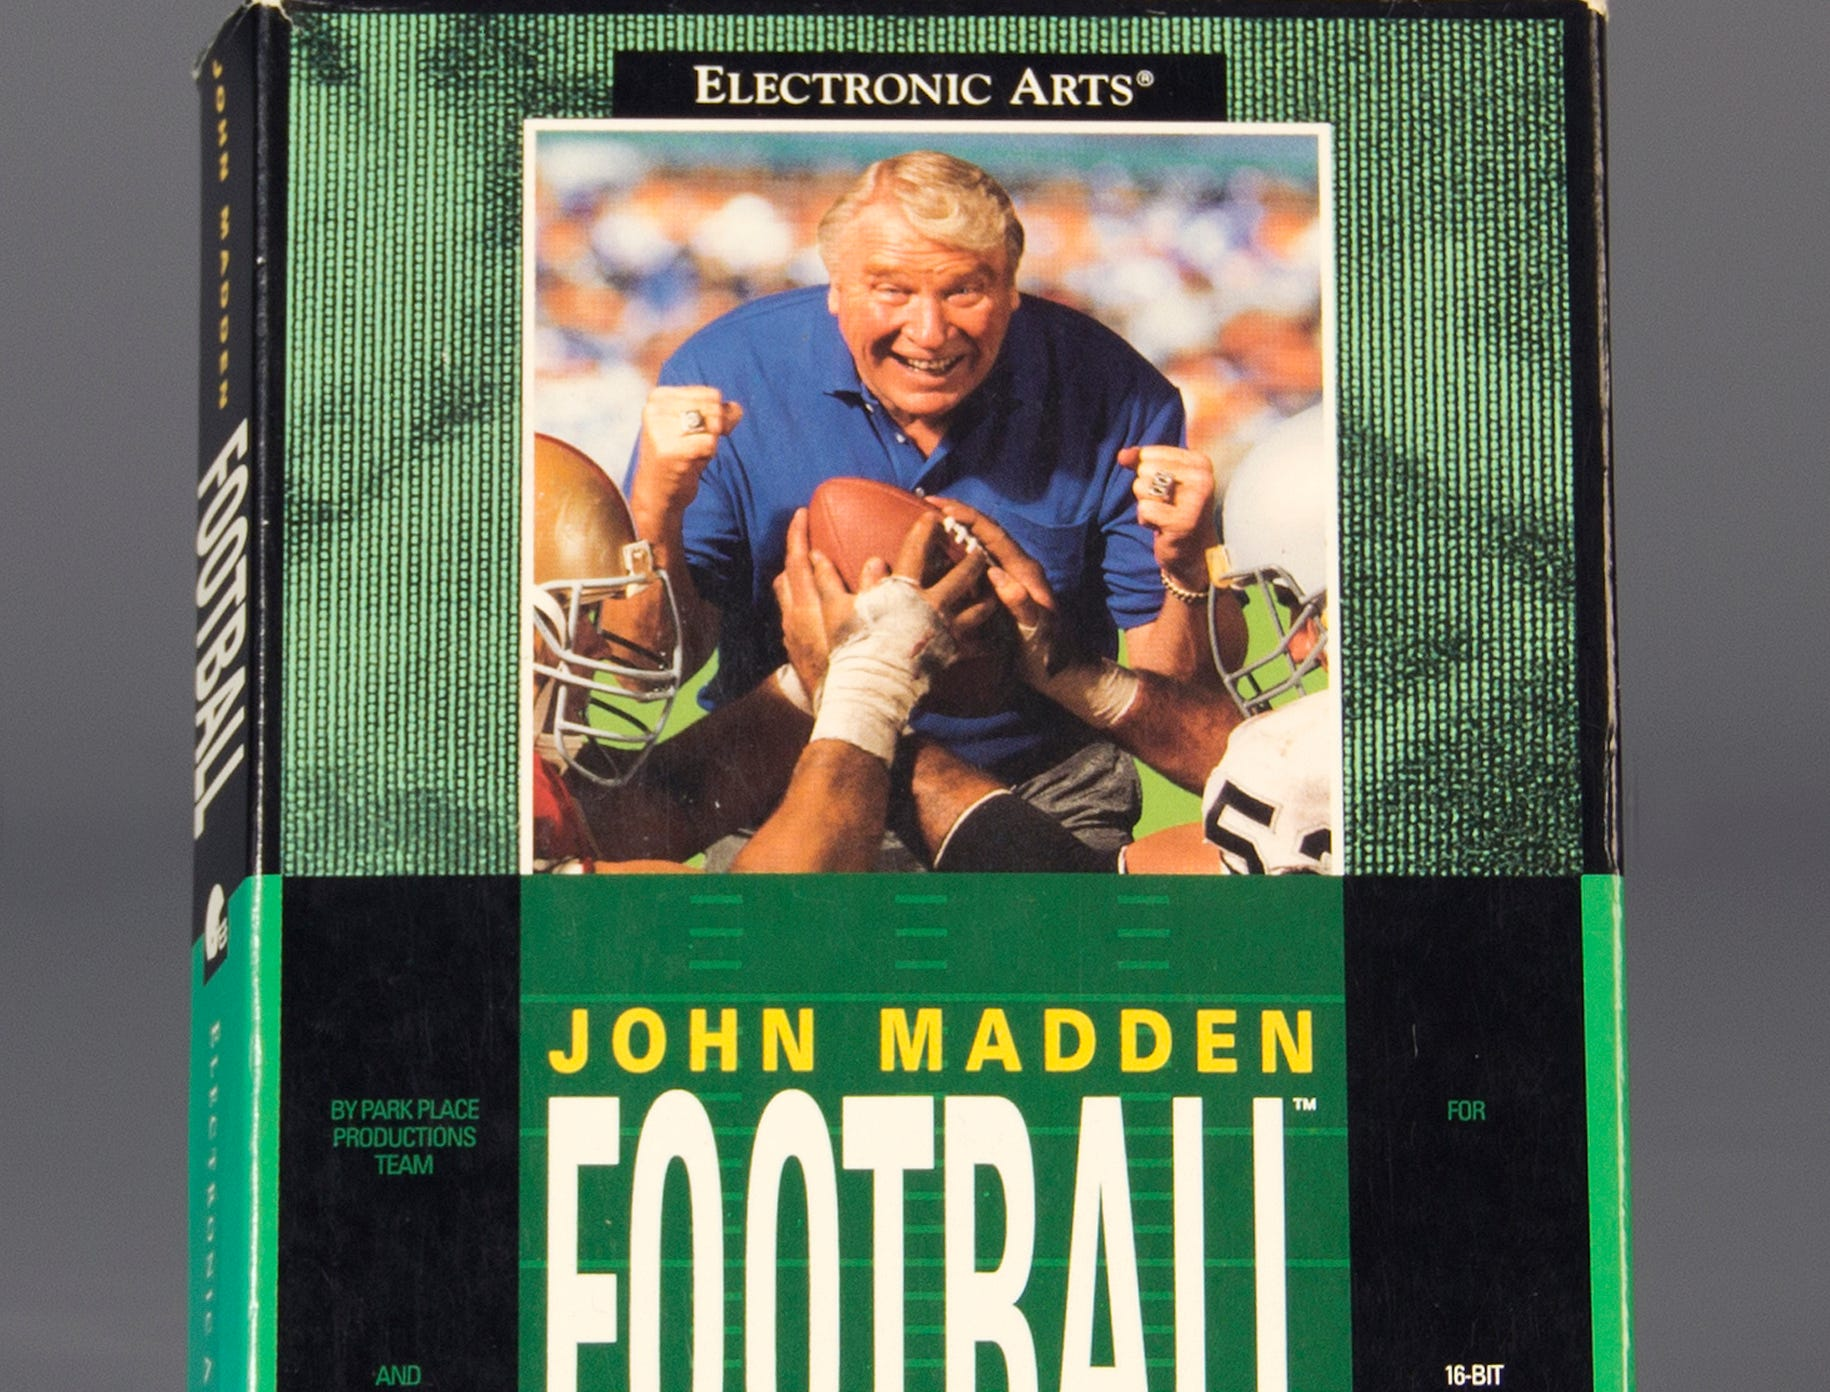 John Madden Football was inducted into the World Video Game Hall of Fame at The Strong National Museum of Play in Rochester, New York in 2018.